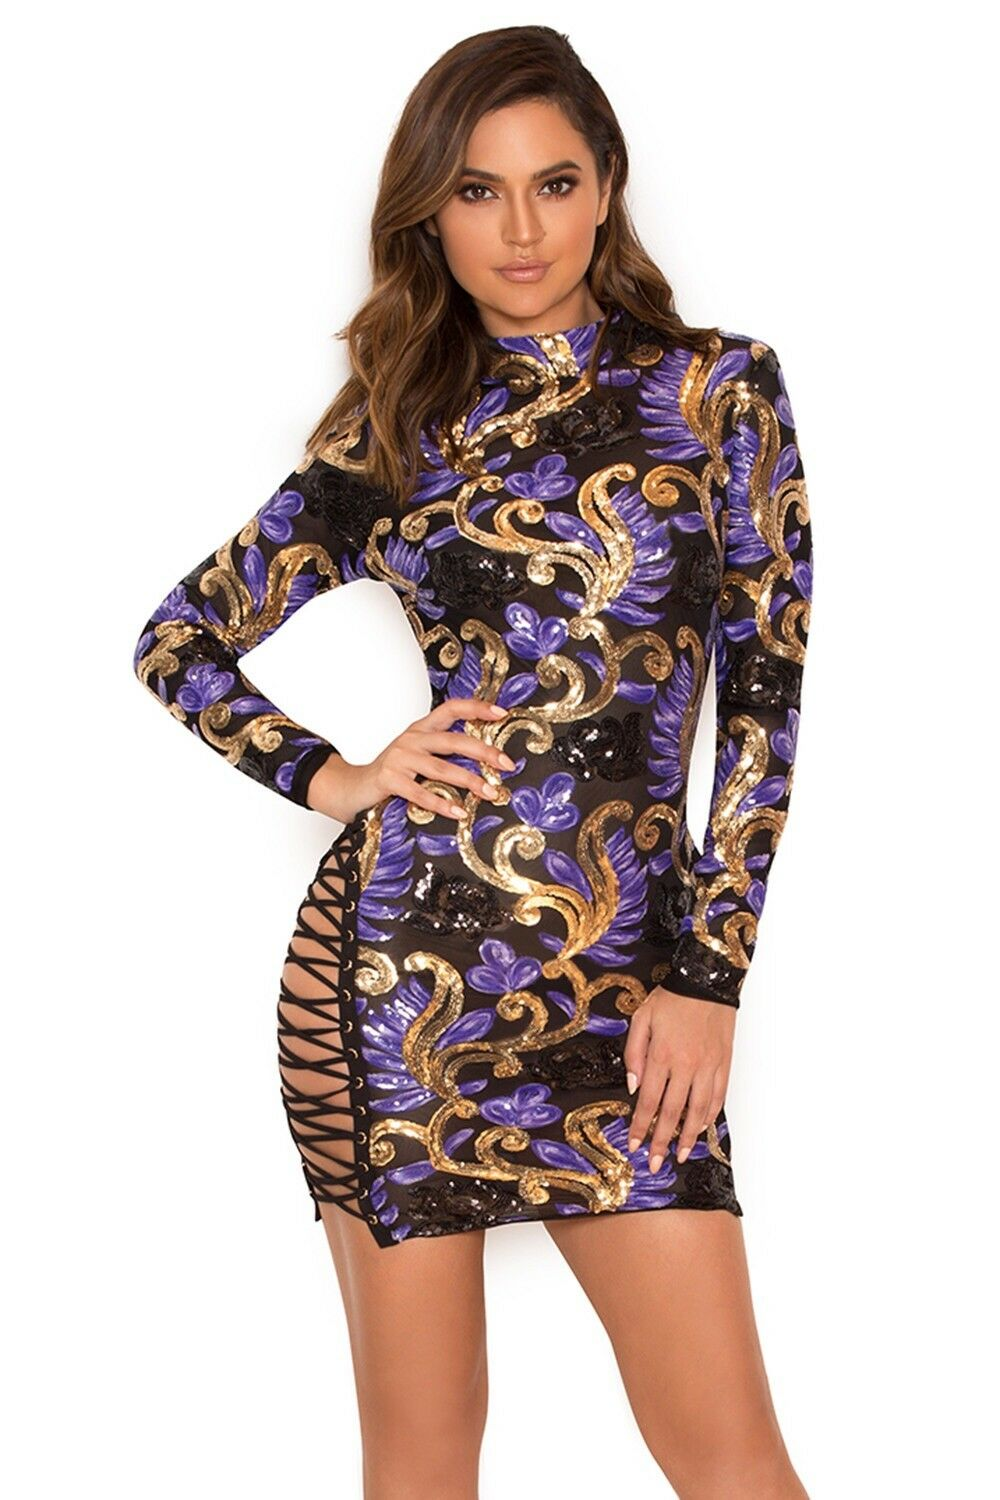 HouseofCB Taya purple and gold sequin sequin sequin mini dress 481df0